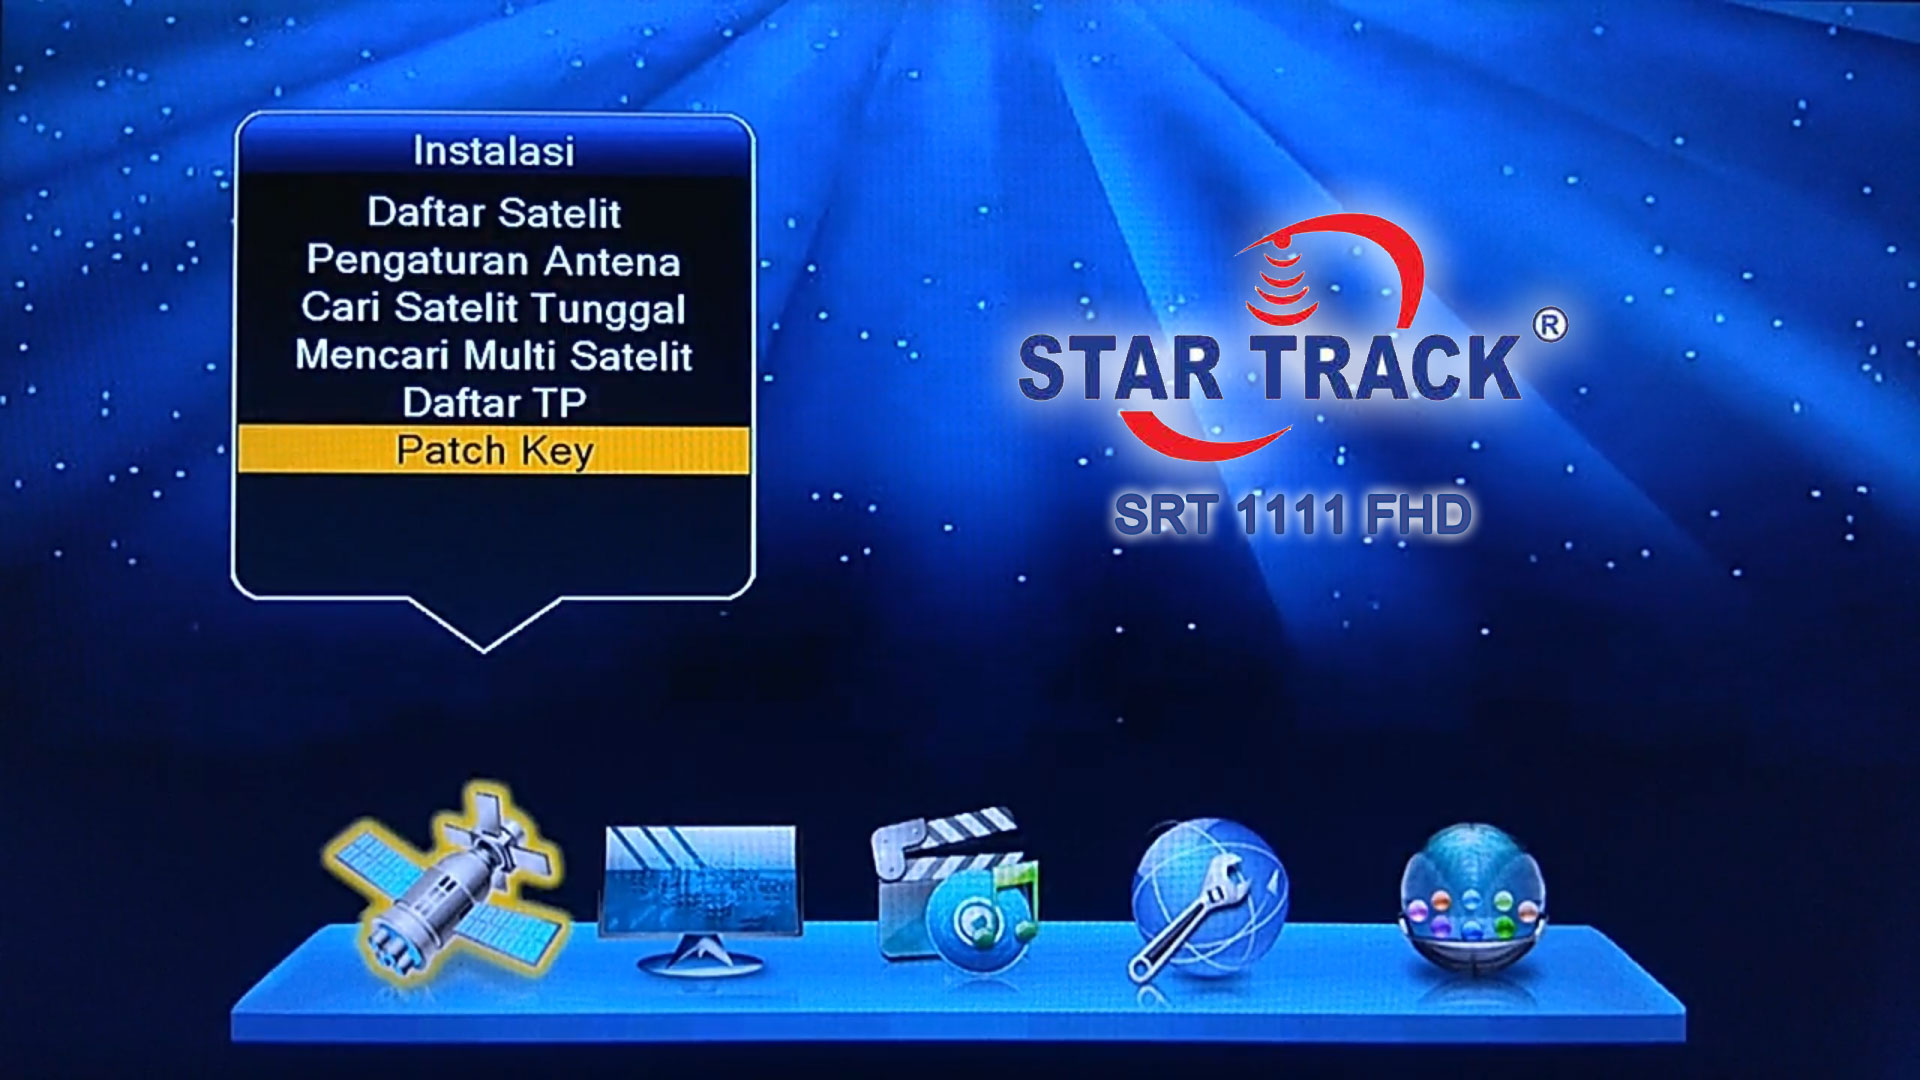 Download Software Star Track SRT 1111 FHD Update Firmware Receiver